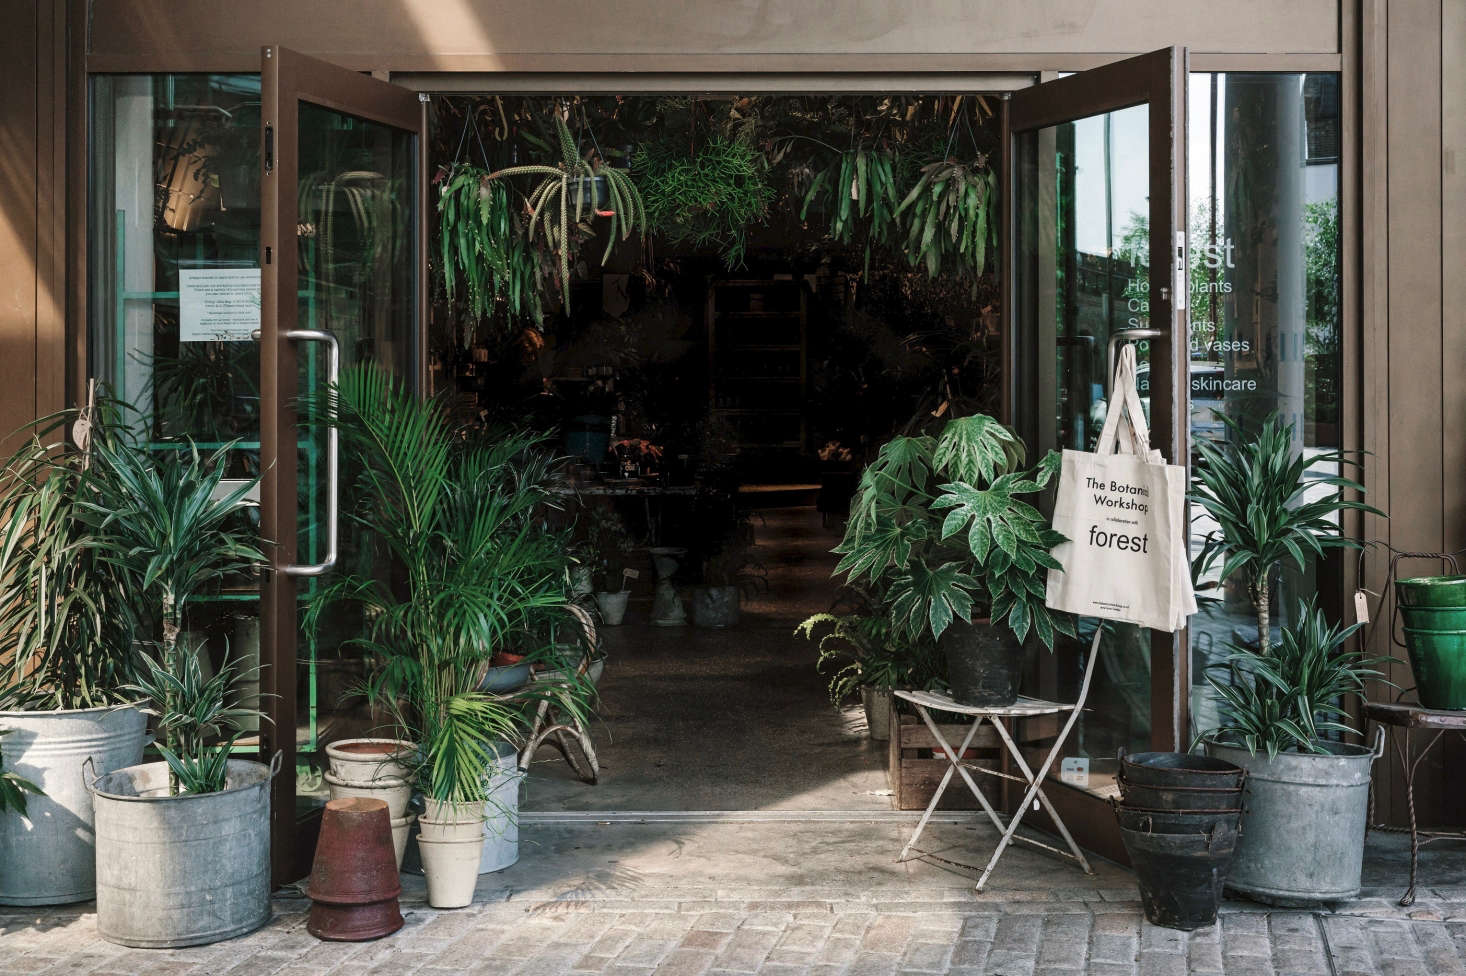 """Fran was originally looking for a workspace for her thriving floristry business, but as the original site is so close to a bustling shopping area she added some plants, pots, accessories and antiques. """"But then,"""" says Fran, """"The plant thing went boom."""""""